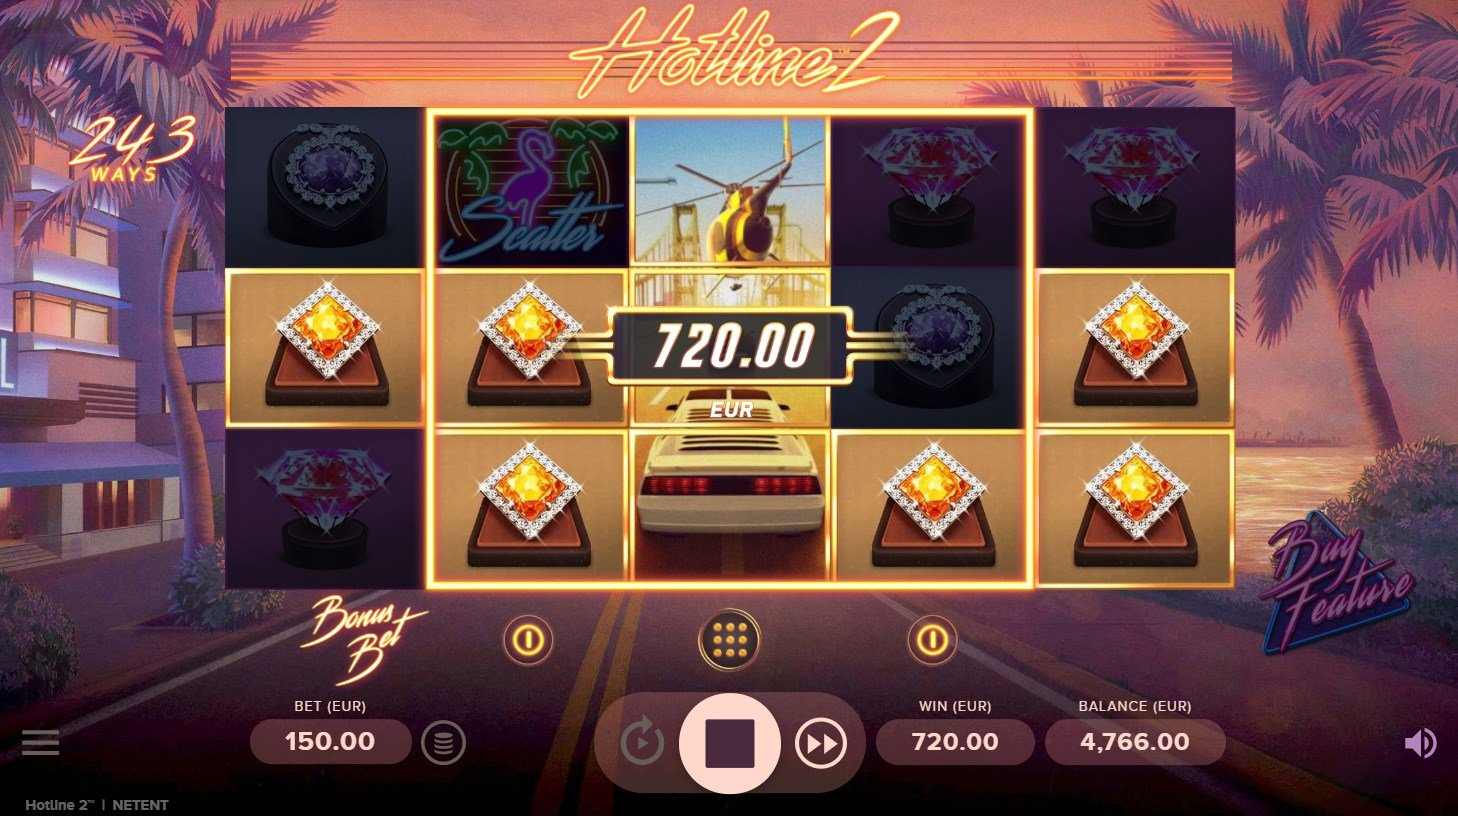 Hotline 2 – New Slot Game From Netent